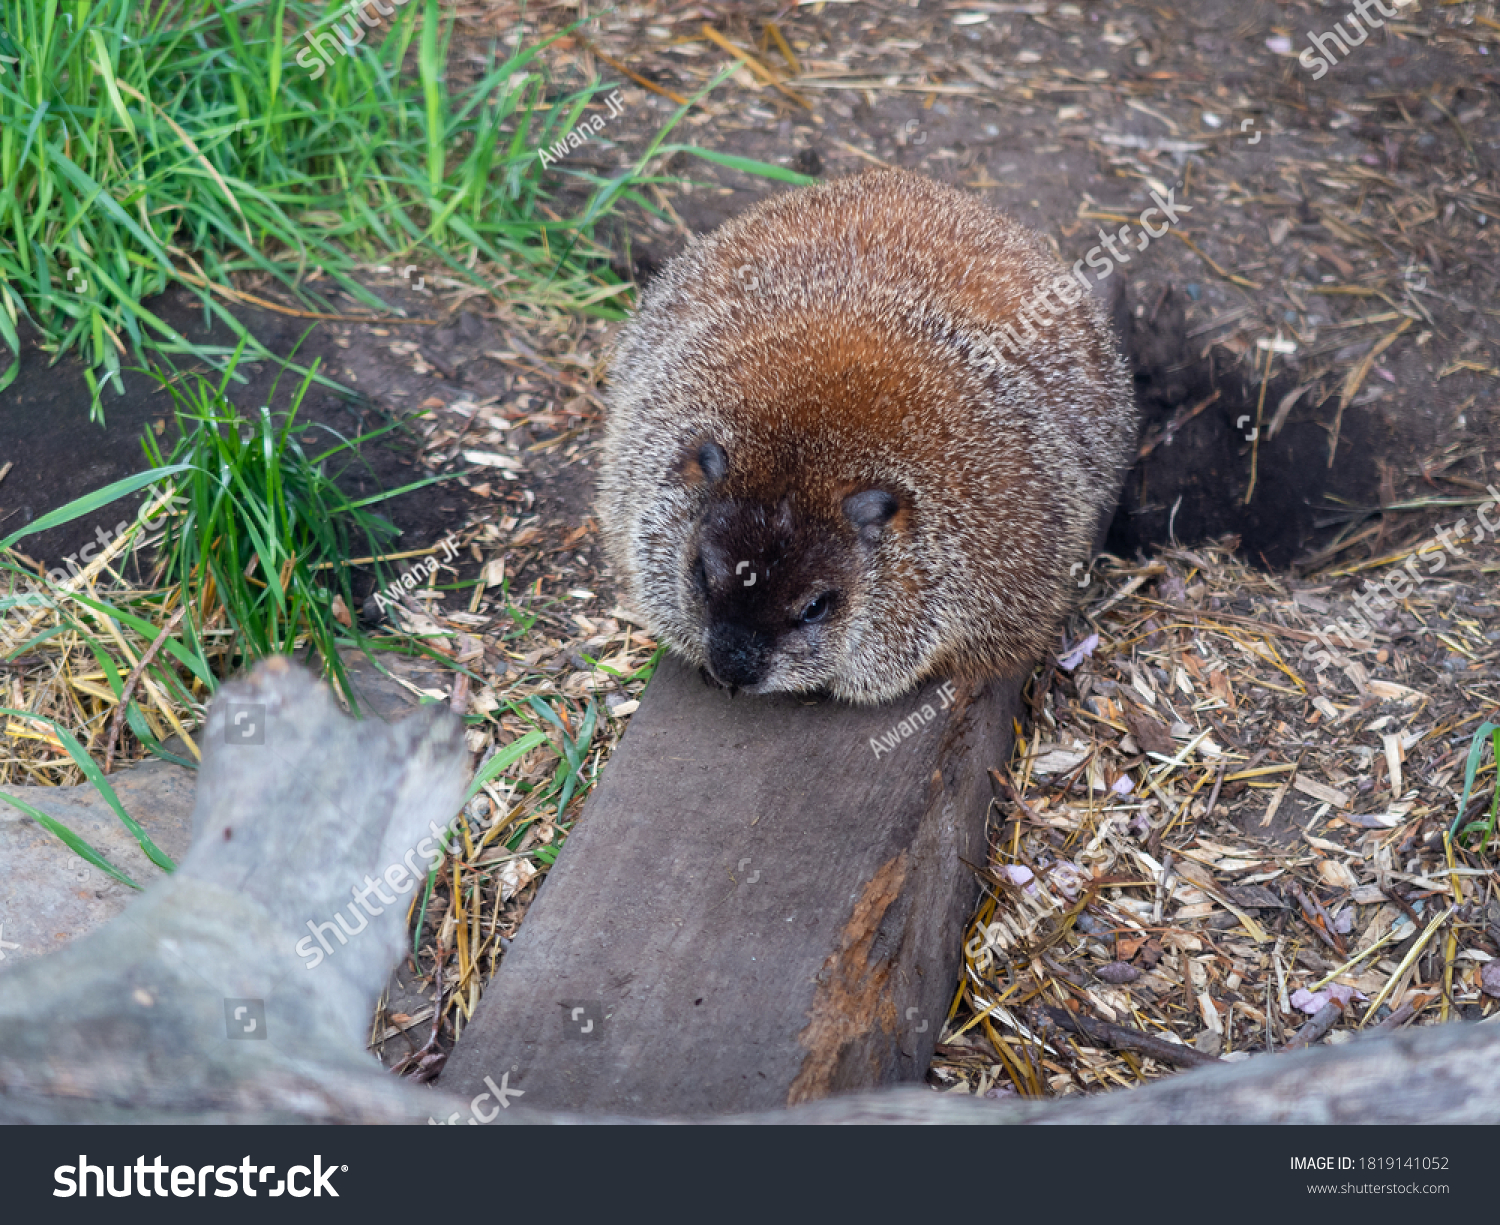 stock-photo-view-of-a-canadian-groundhog